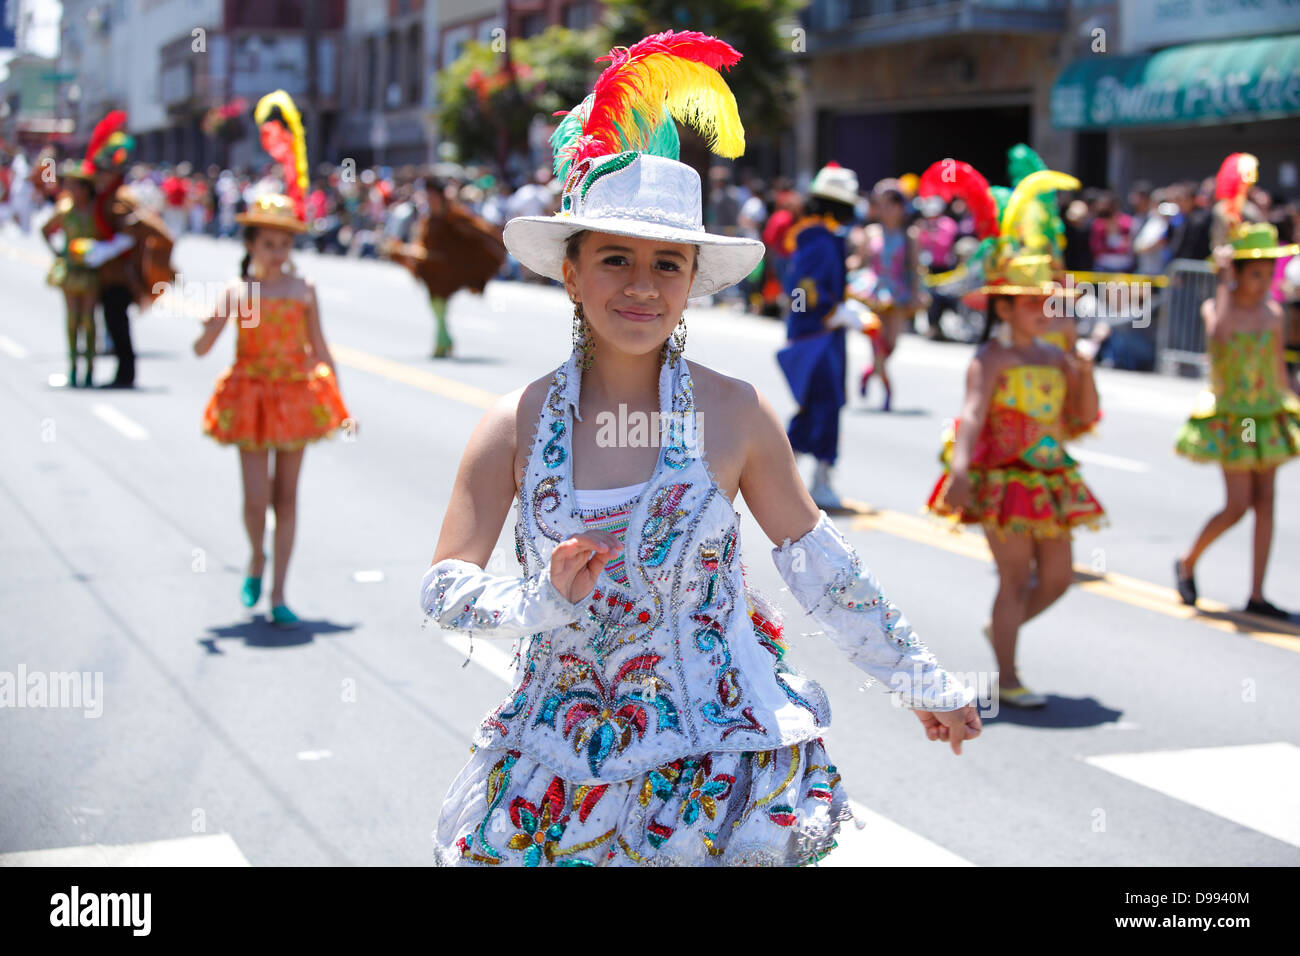 Young girl in traditional bolivian costume during Carnaval parade in Mission District, San Francisco, California, - Stock Image